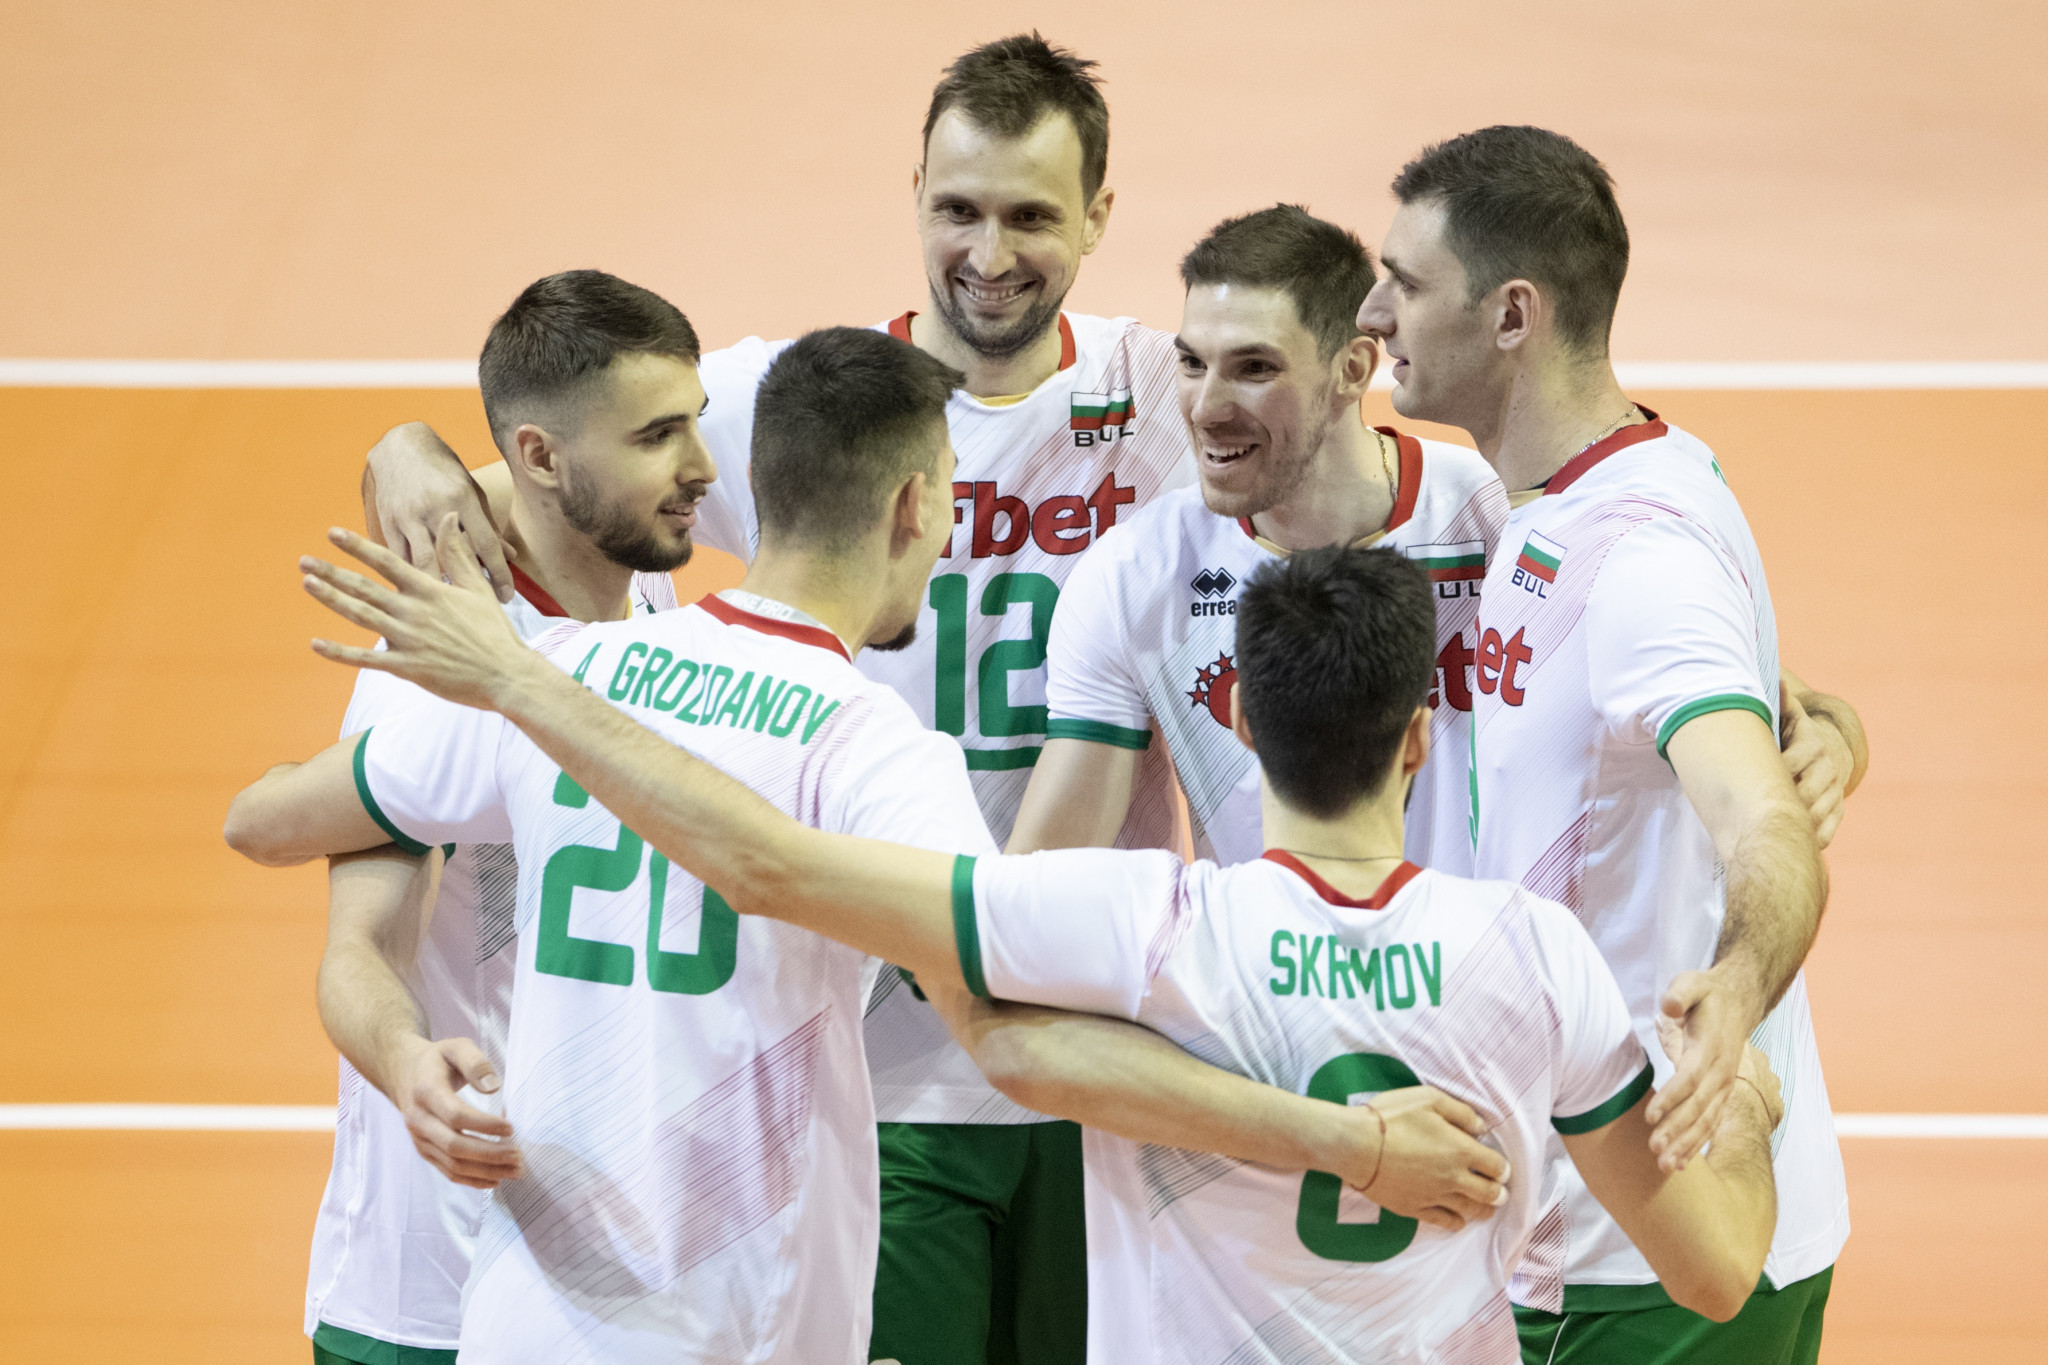 Bulgaria cruise past Netherlands to top Pool B at Men's European Volleyball Olympic Qualification Tournament